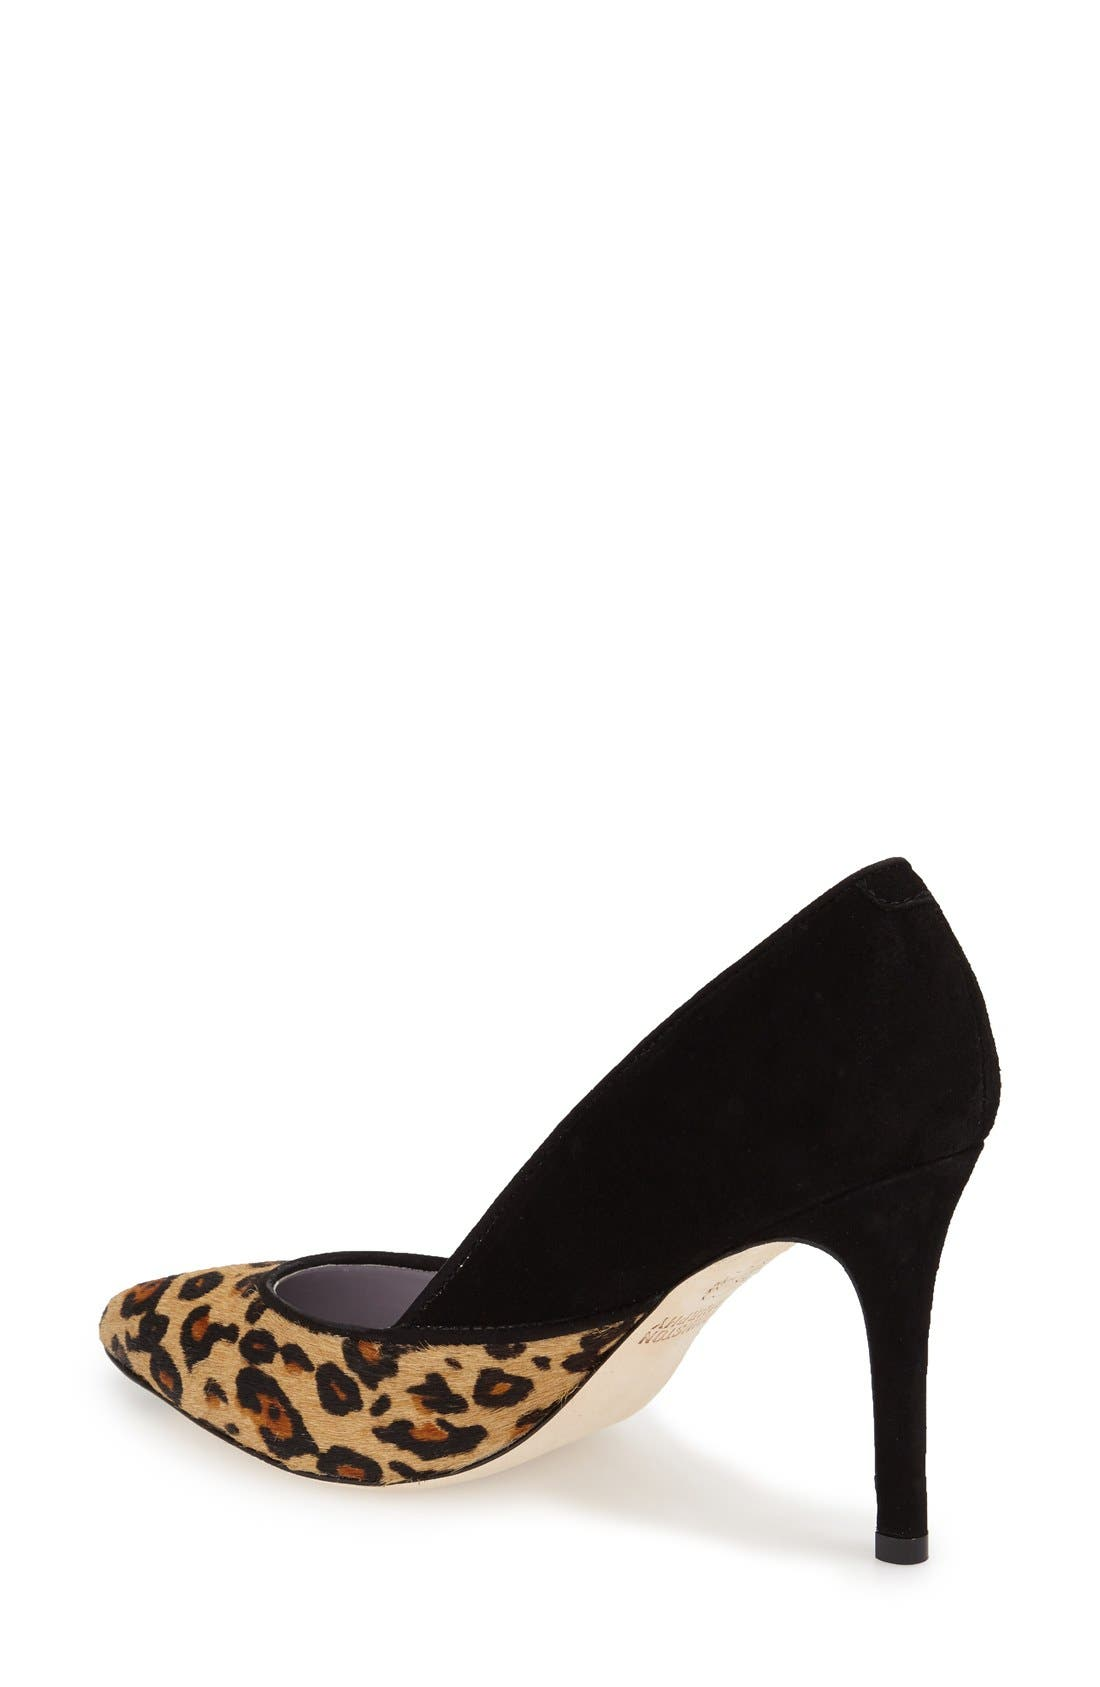 'Vanessa' Pointy Toe Leather Pump,                             Alternate thumbnail 10, color,